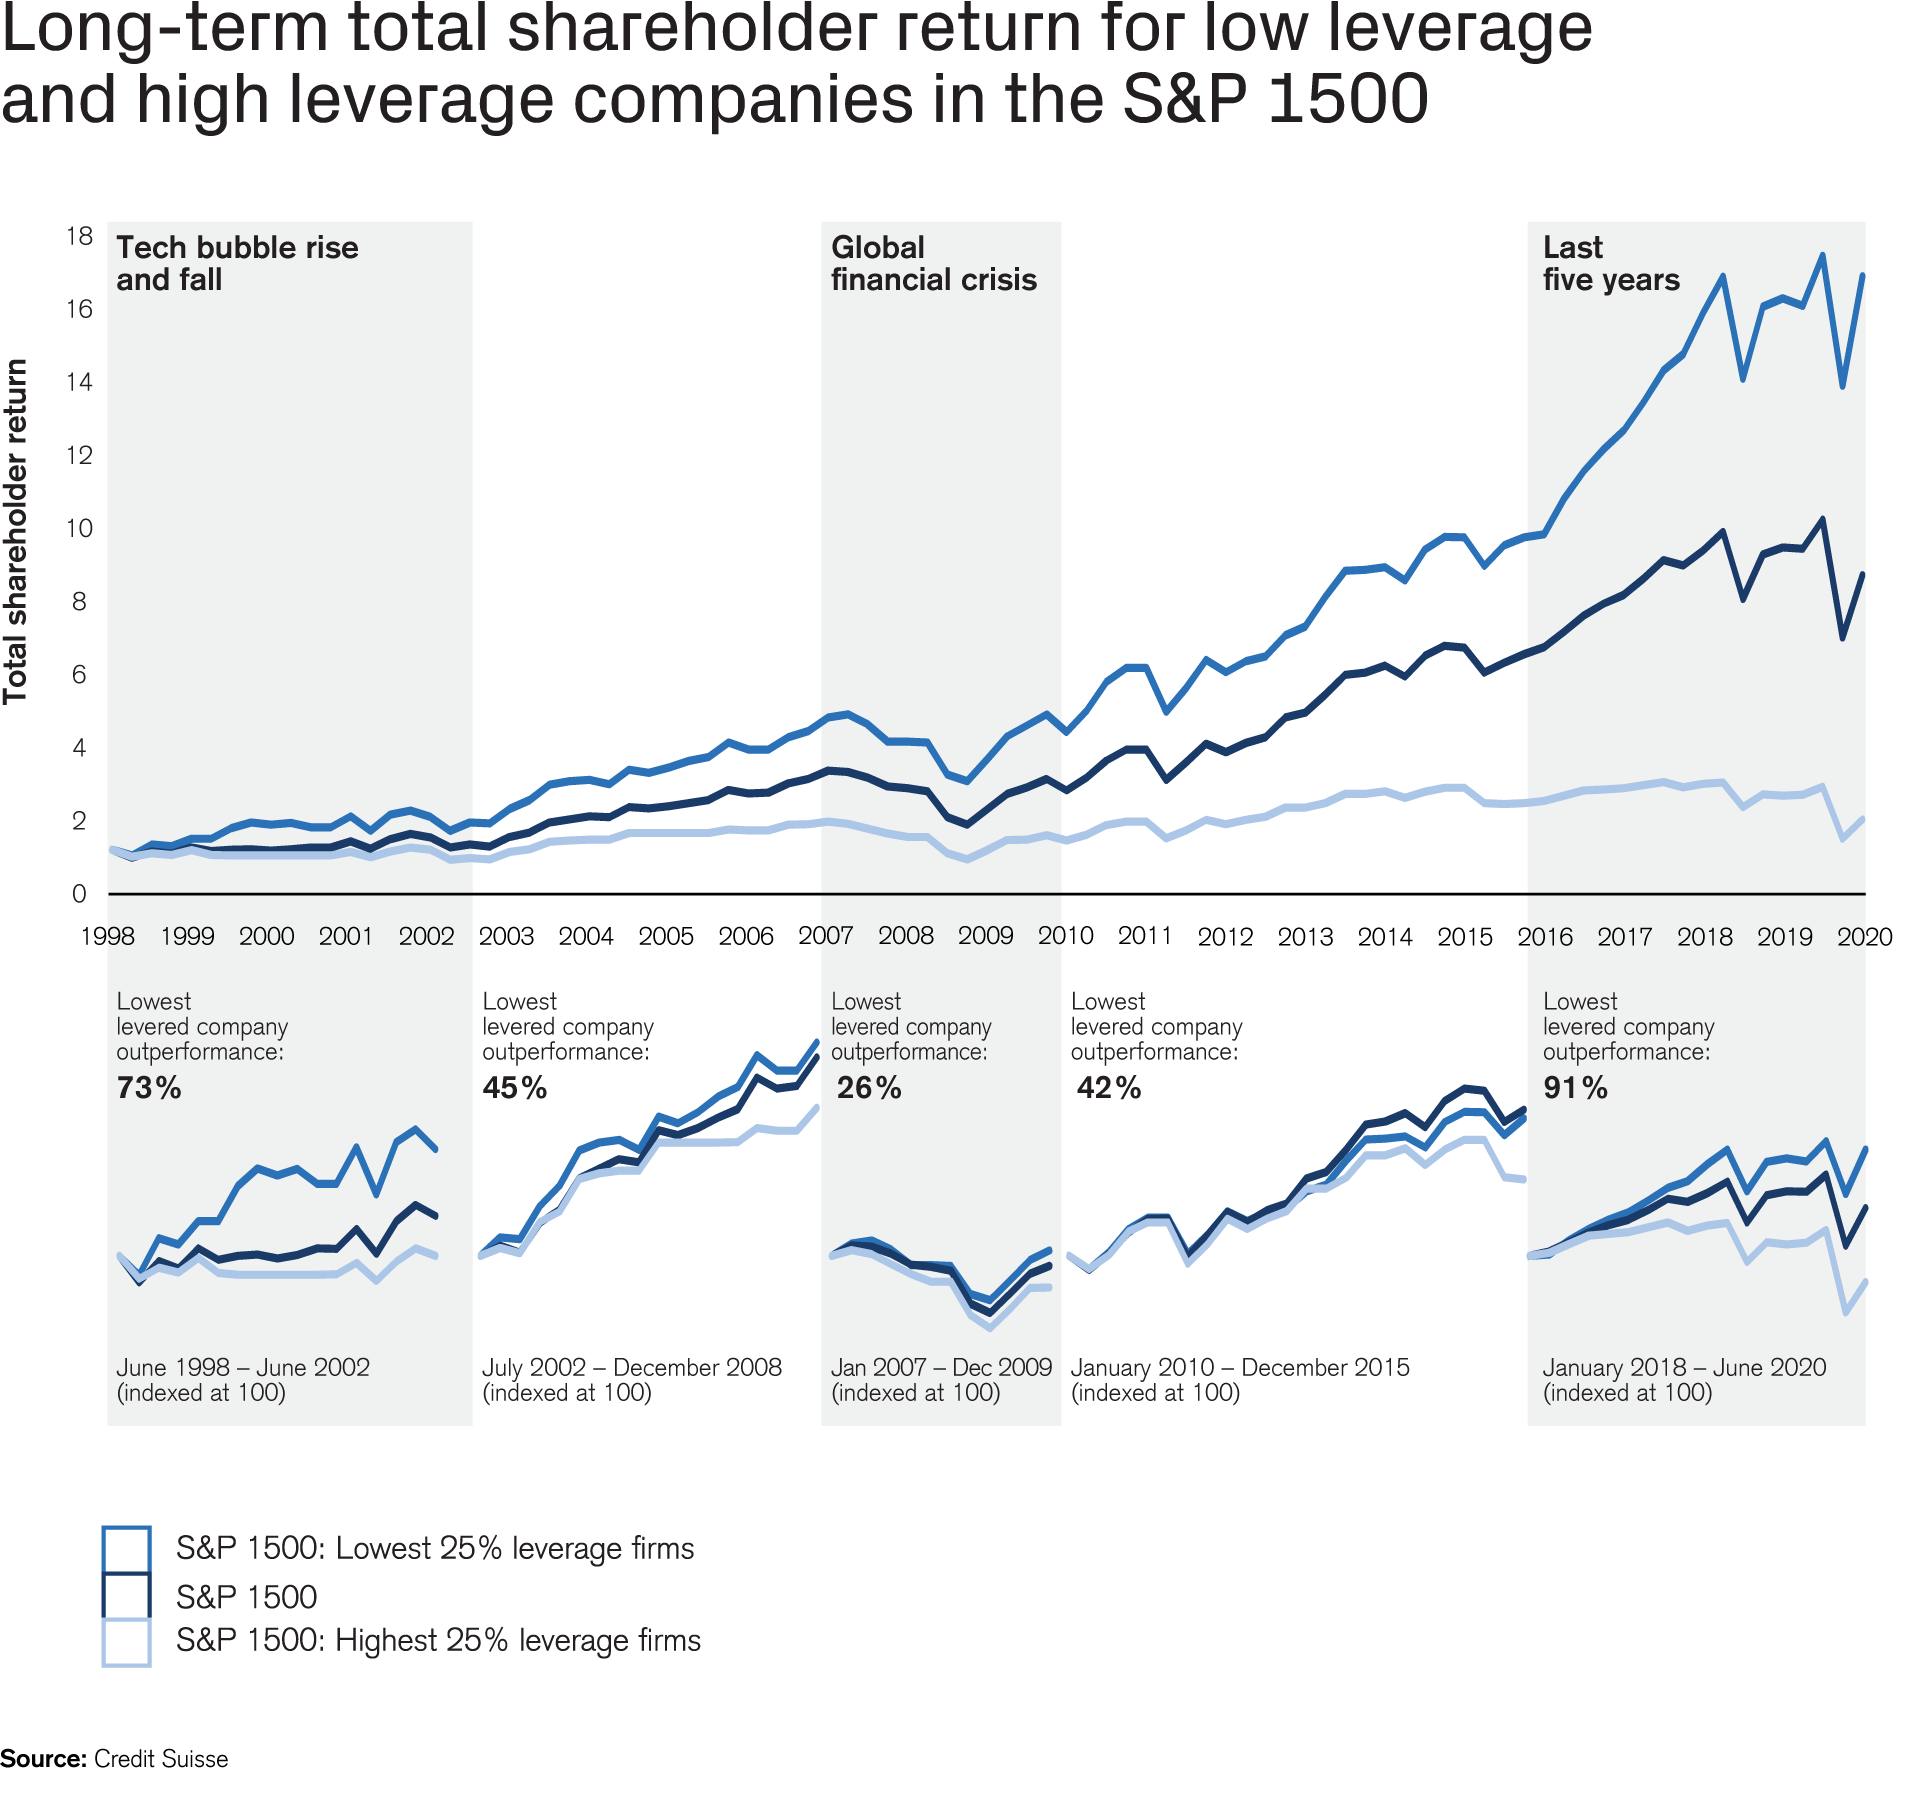 Long-term total shareholder return for low leverage and high leverage companies in the S&P 1500